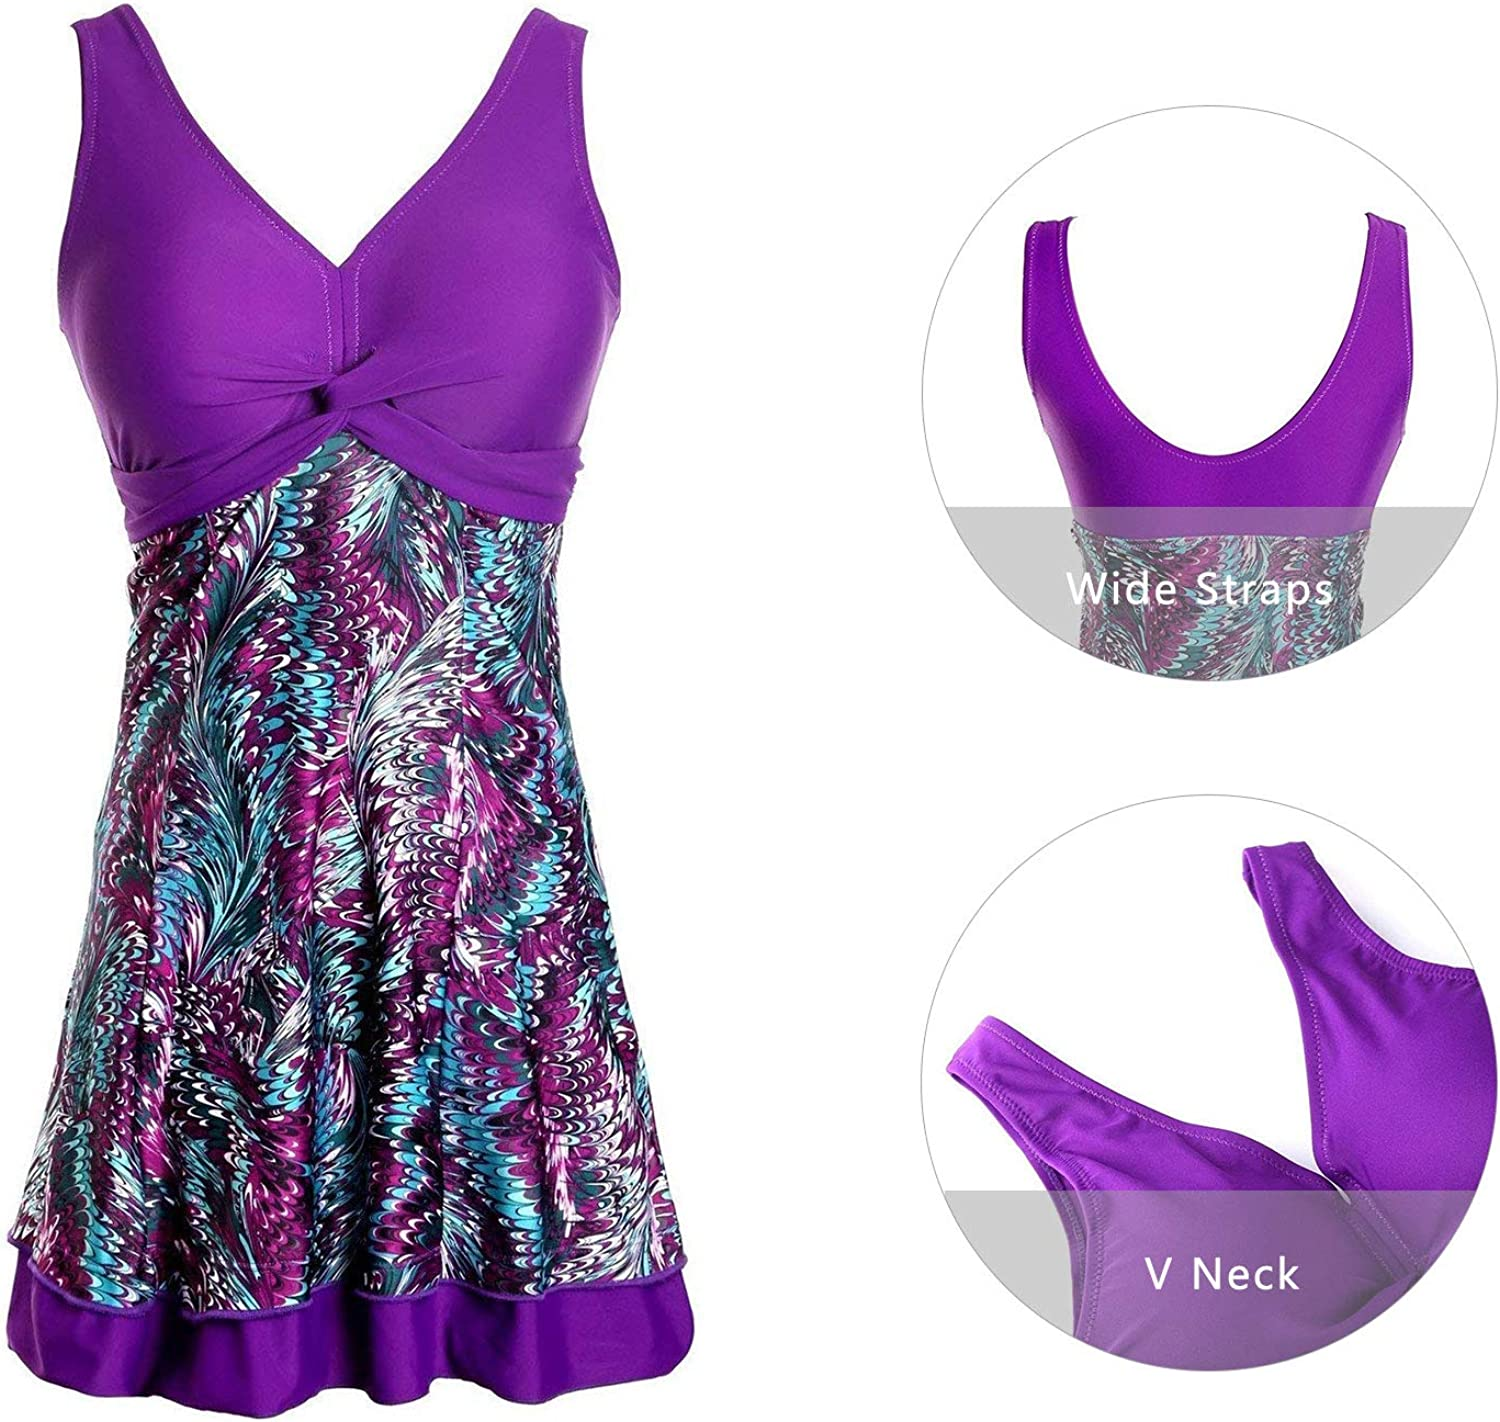 Ecupper Womens One Piece Swimsuit Plus Size Swimwear Floral Printed Swimming Costume with Skirt